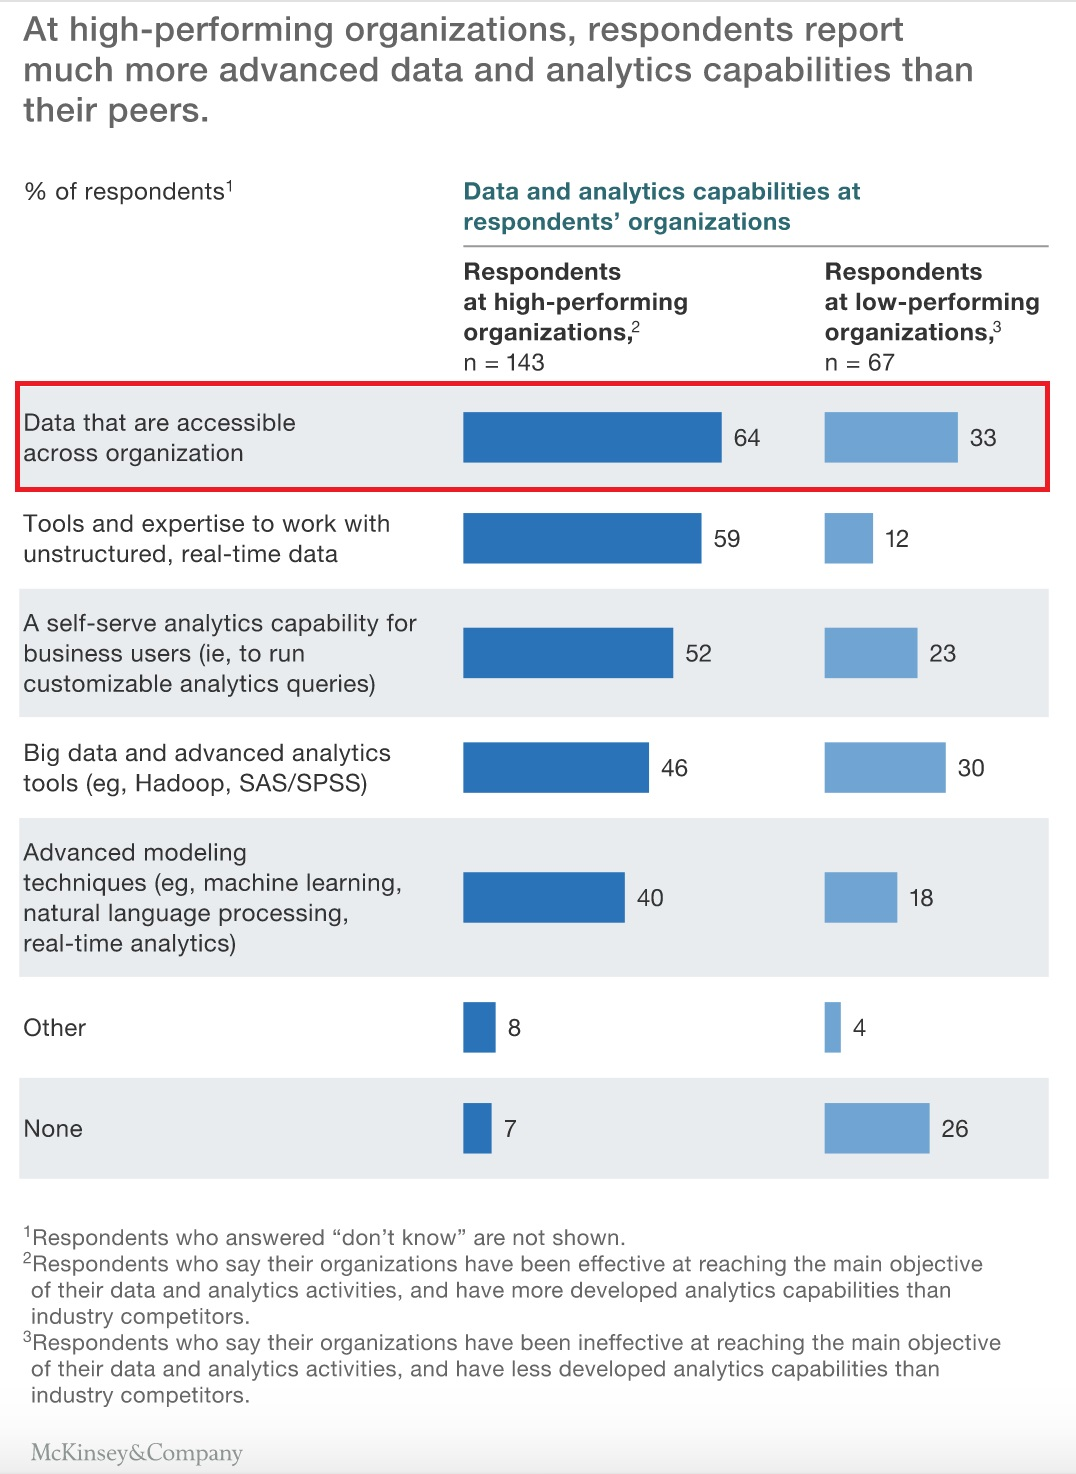 https://www.mckinsey.com/business-functions/digital-mckinsey/our-insights/the-need-to-lead-in-data-and-analytics